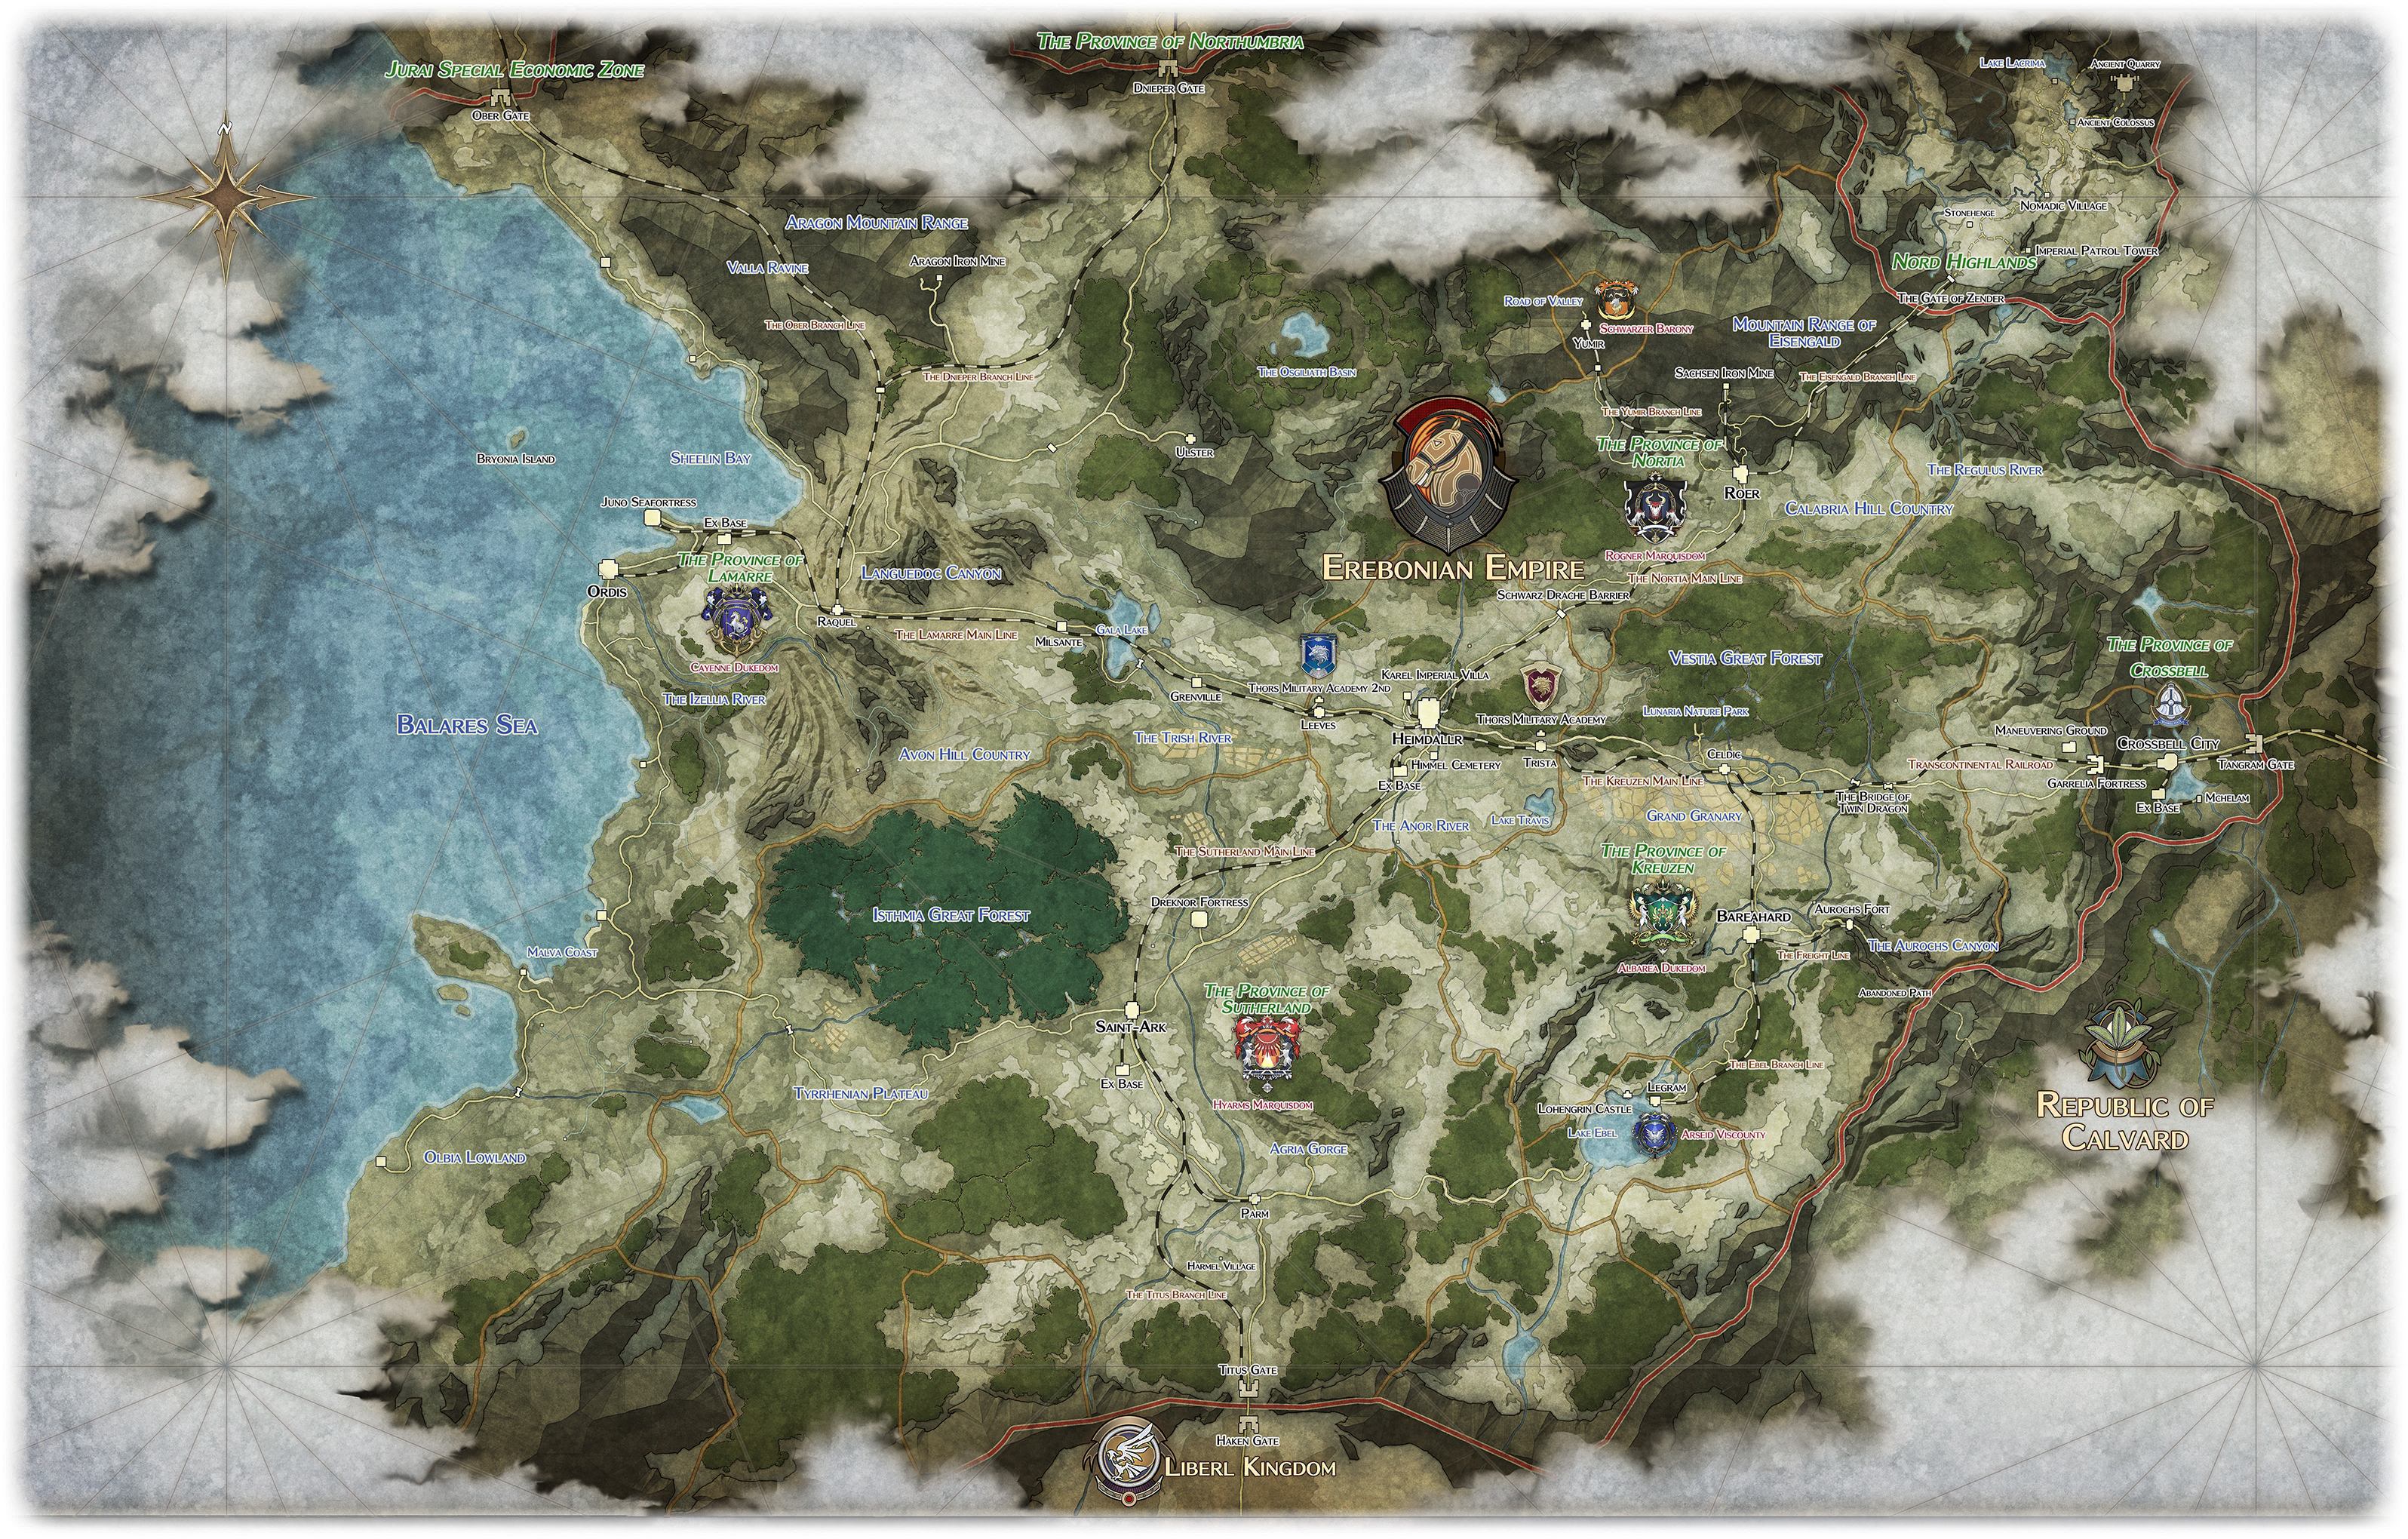 Trails Of Cold Steel World Map.Need Some Info About Lloyd Falcom